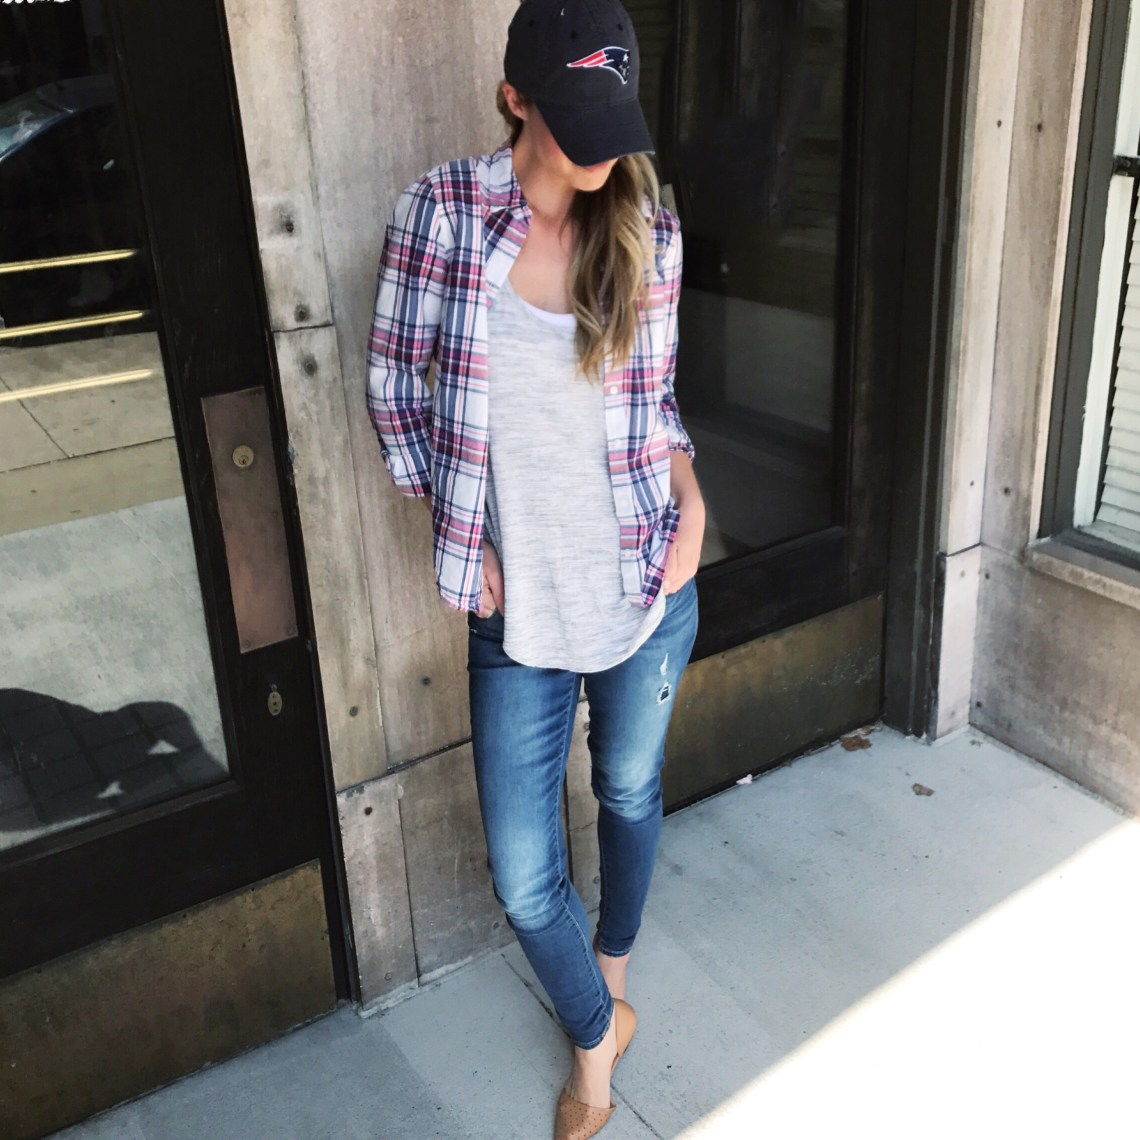 Patriots Hats - My Favorite Patriots Hats, Beanies and Ballcaps via Misty Nelson, NFL Fanstyle Council Influencer --lifestyle blogger @frostedevents